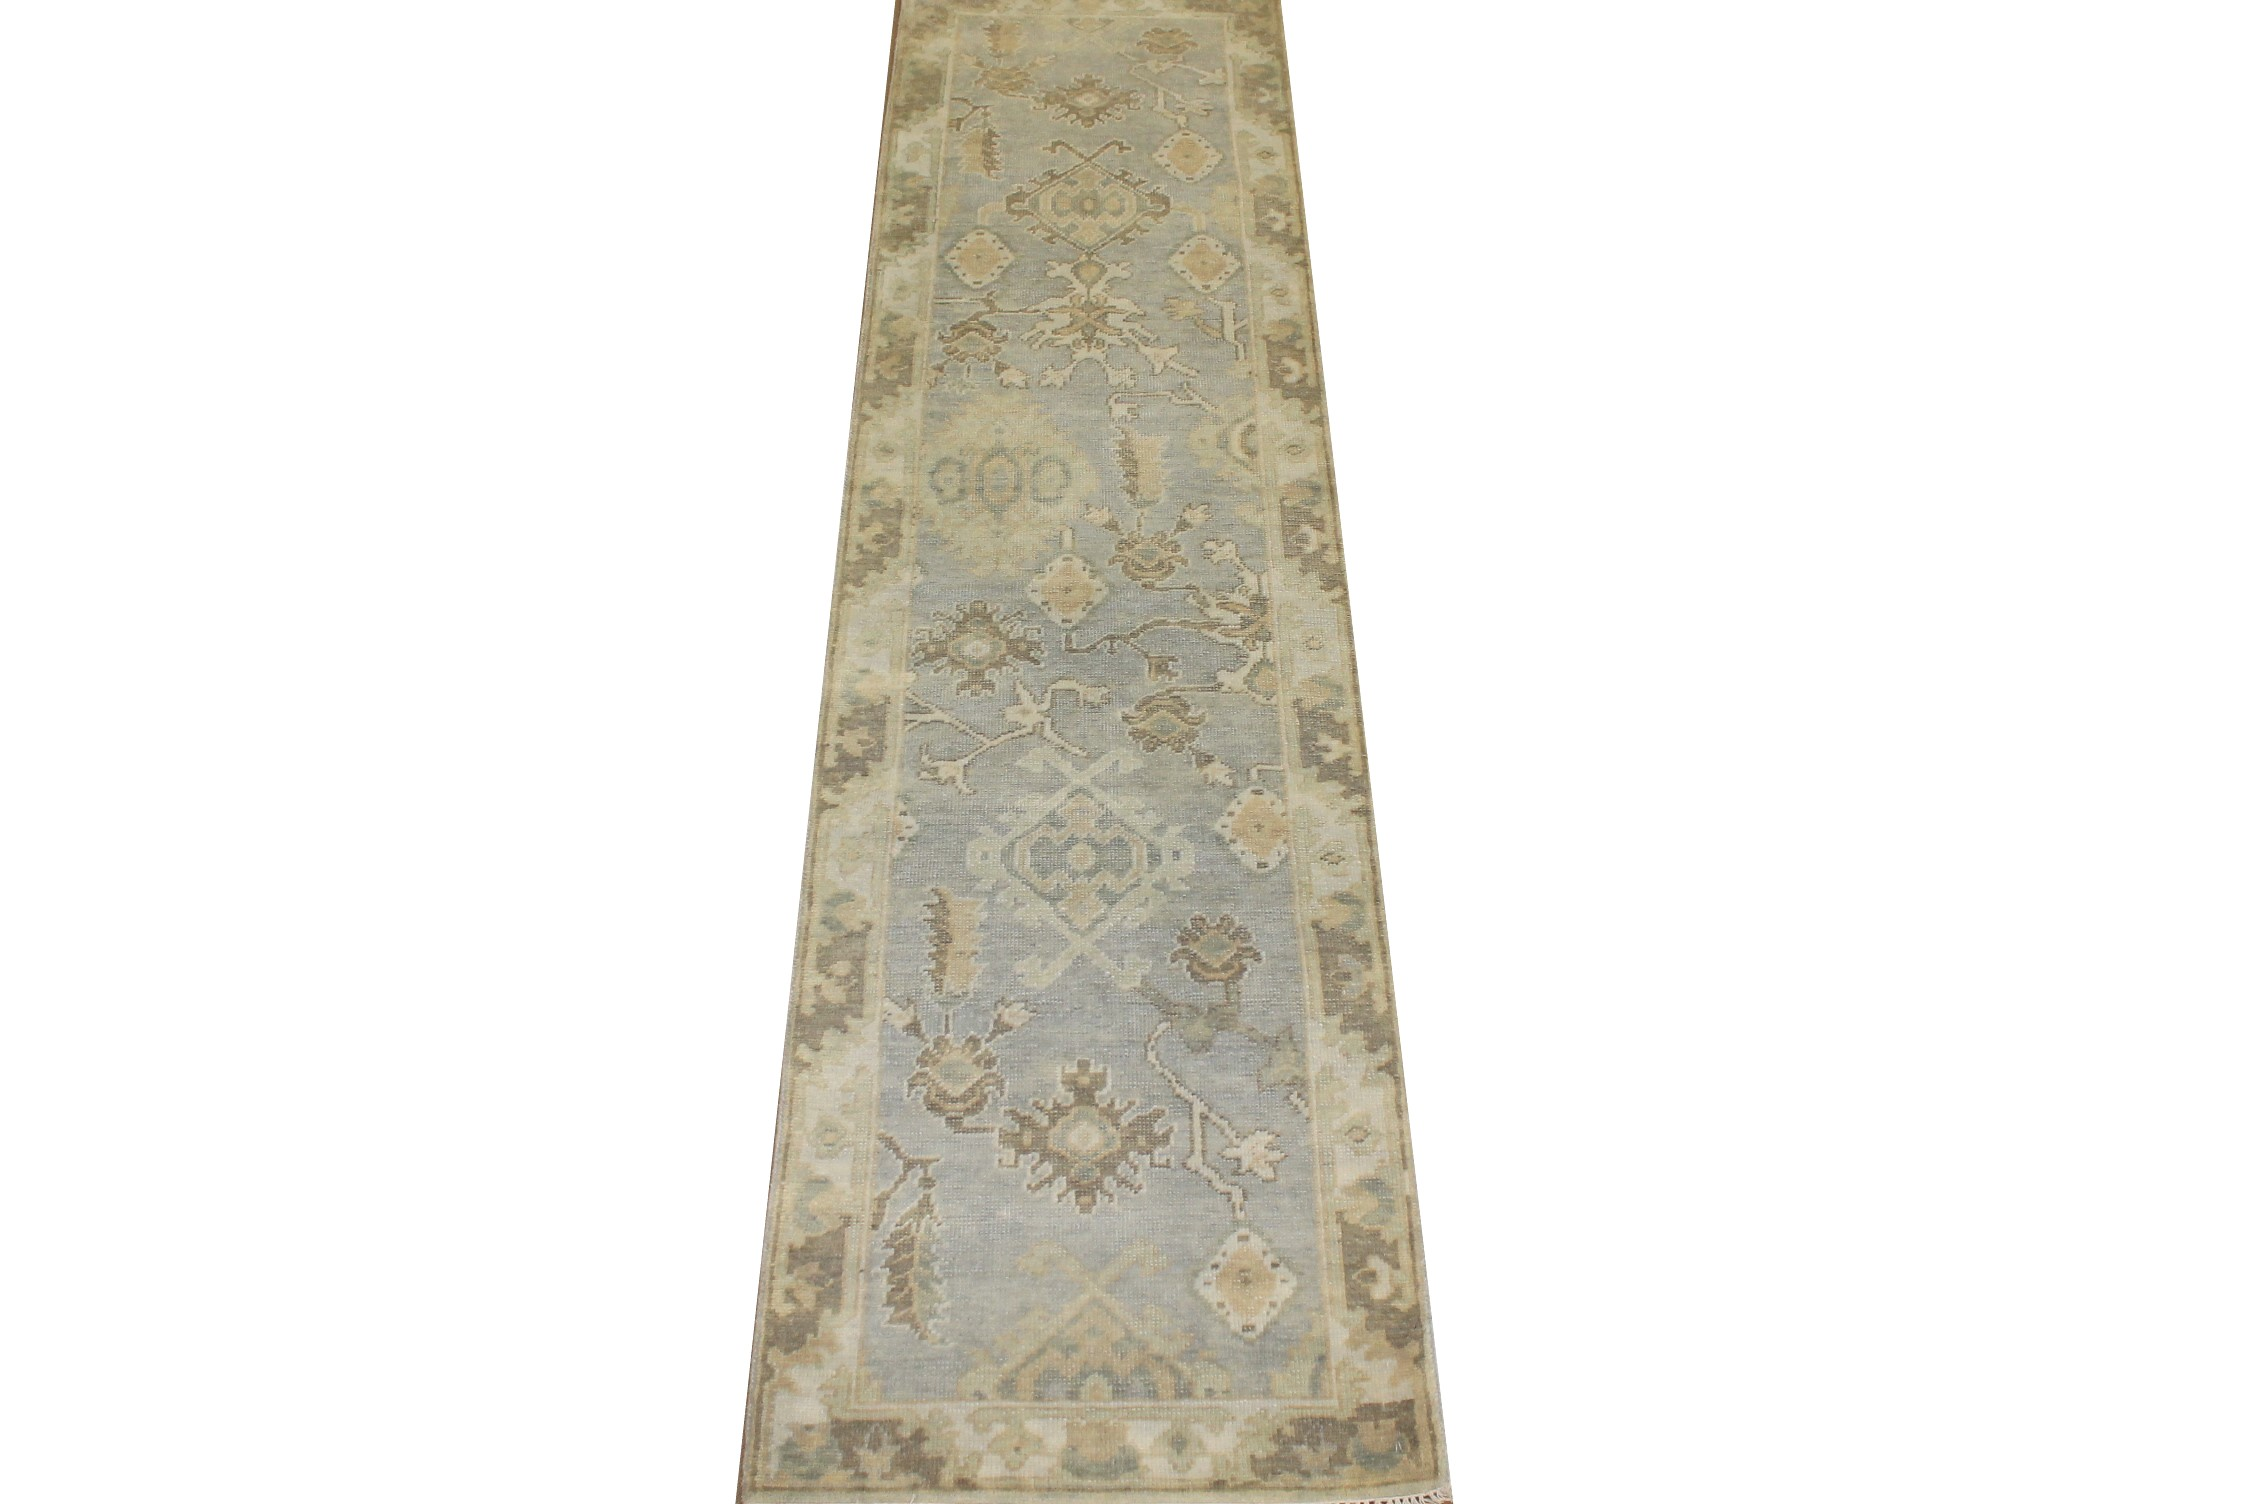 10 ft. Runner Oushak Hand Knotted Wool Area Rug - MR025146